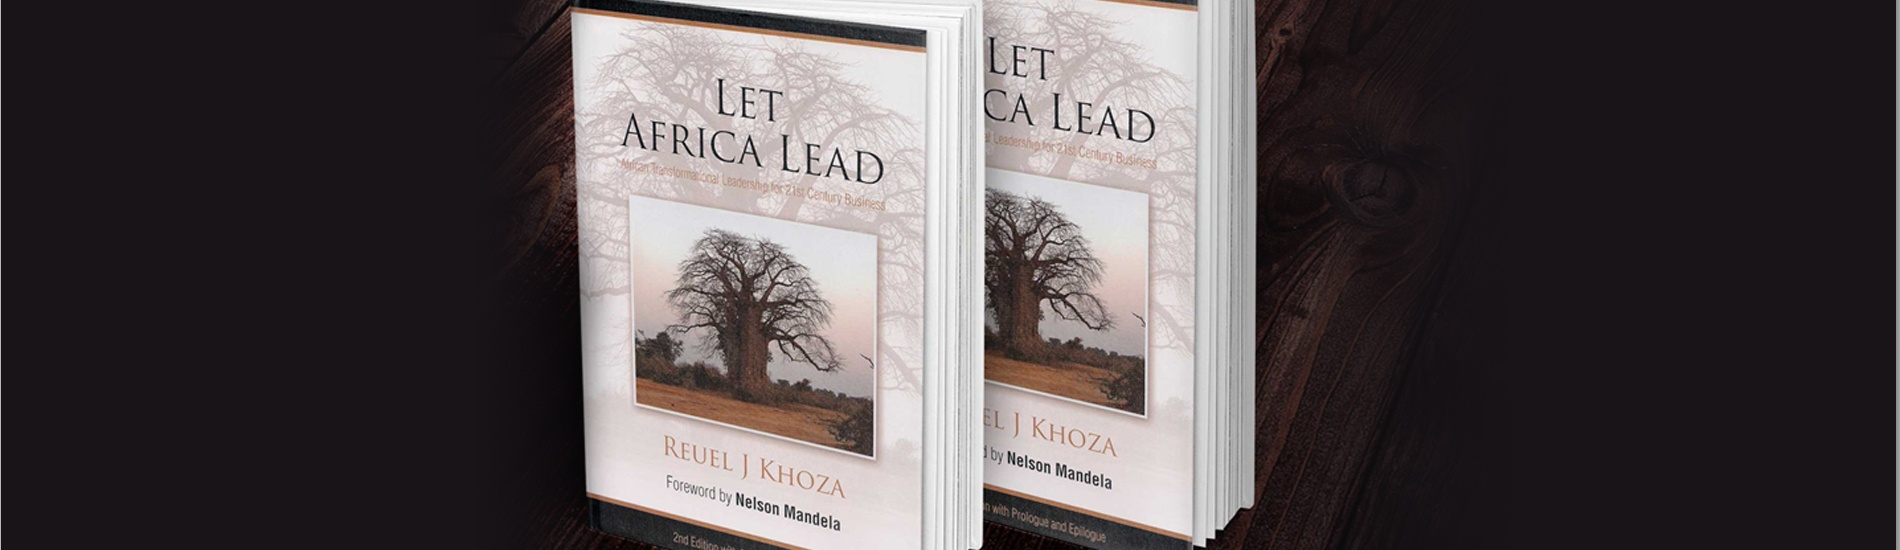 Let Africa Lead